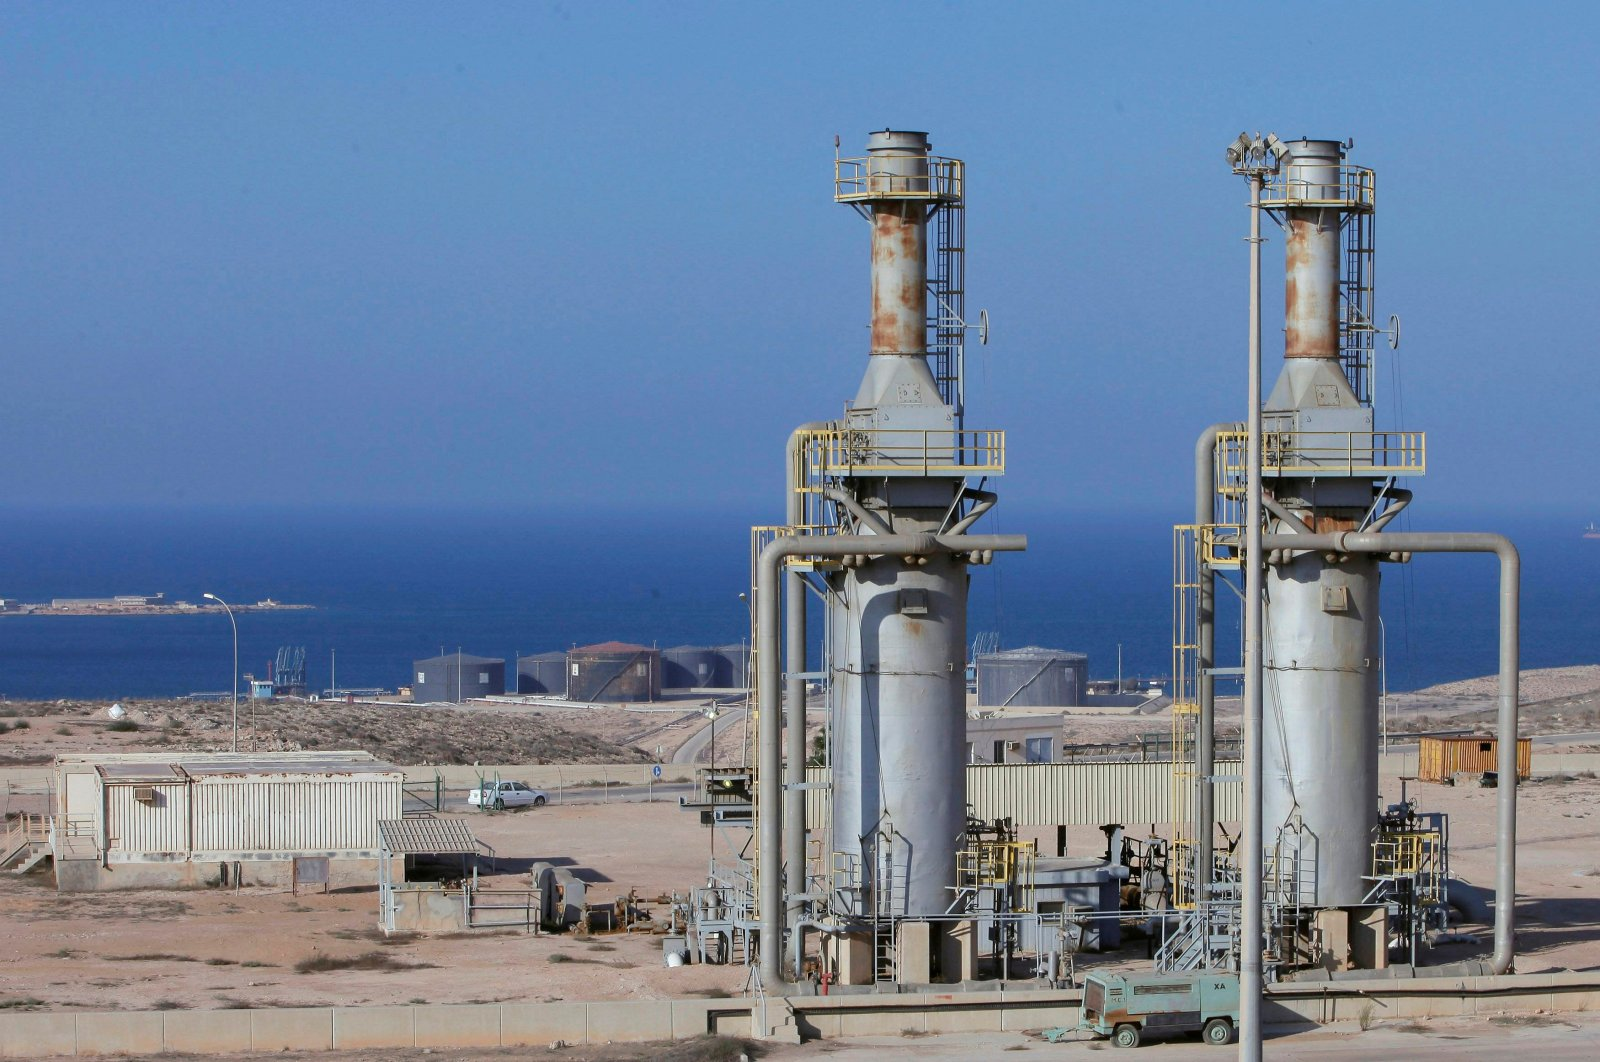 A general view of the Marsa al-Hariga oil port in the city of Tobruk, Libya, Aug. 20, 2013. (Reuters Photo)